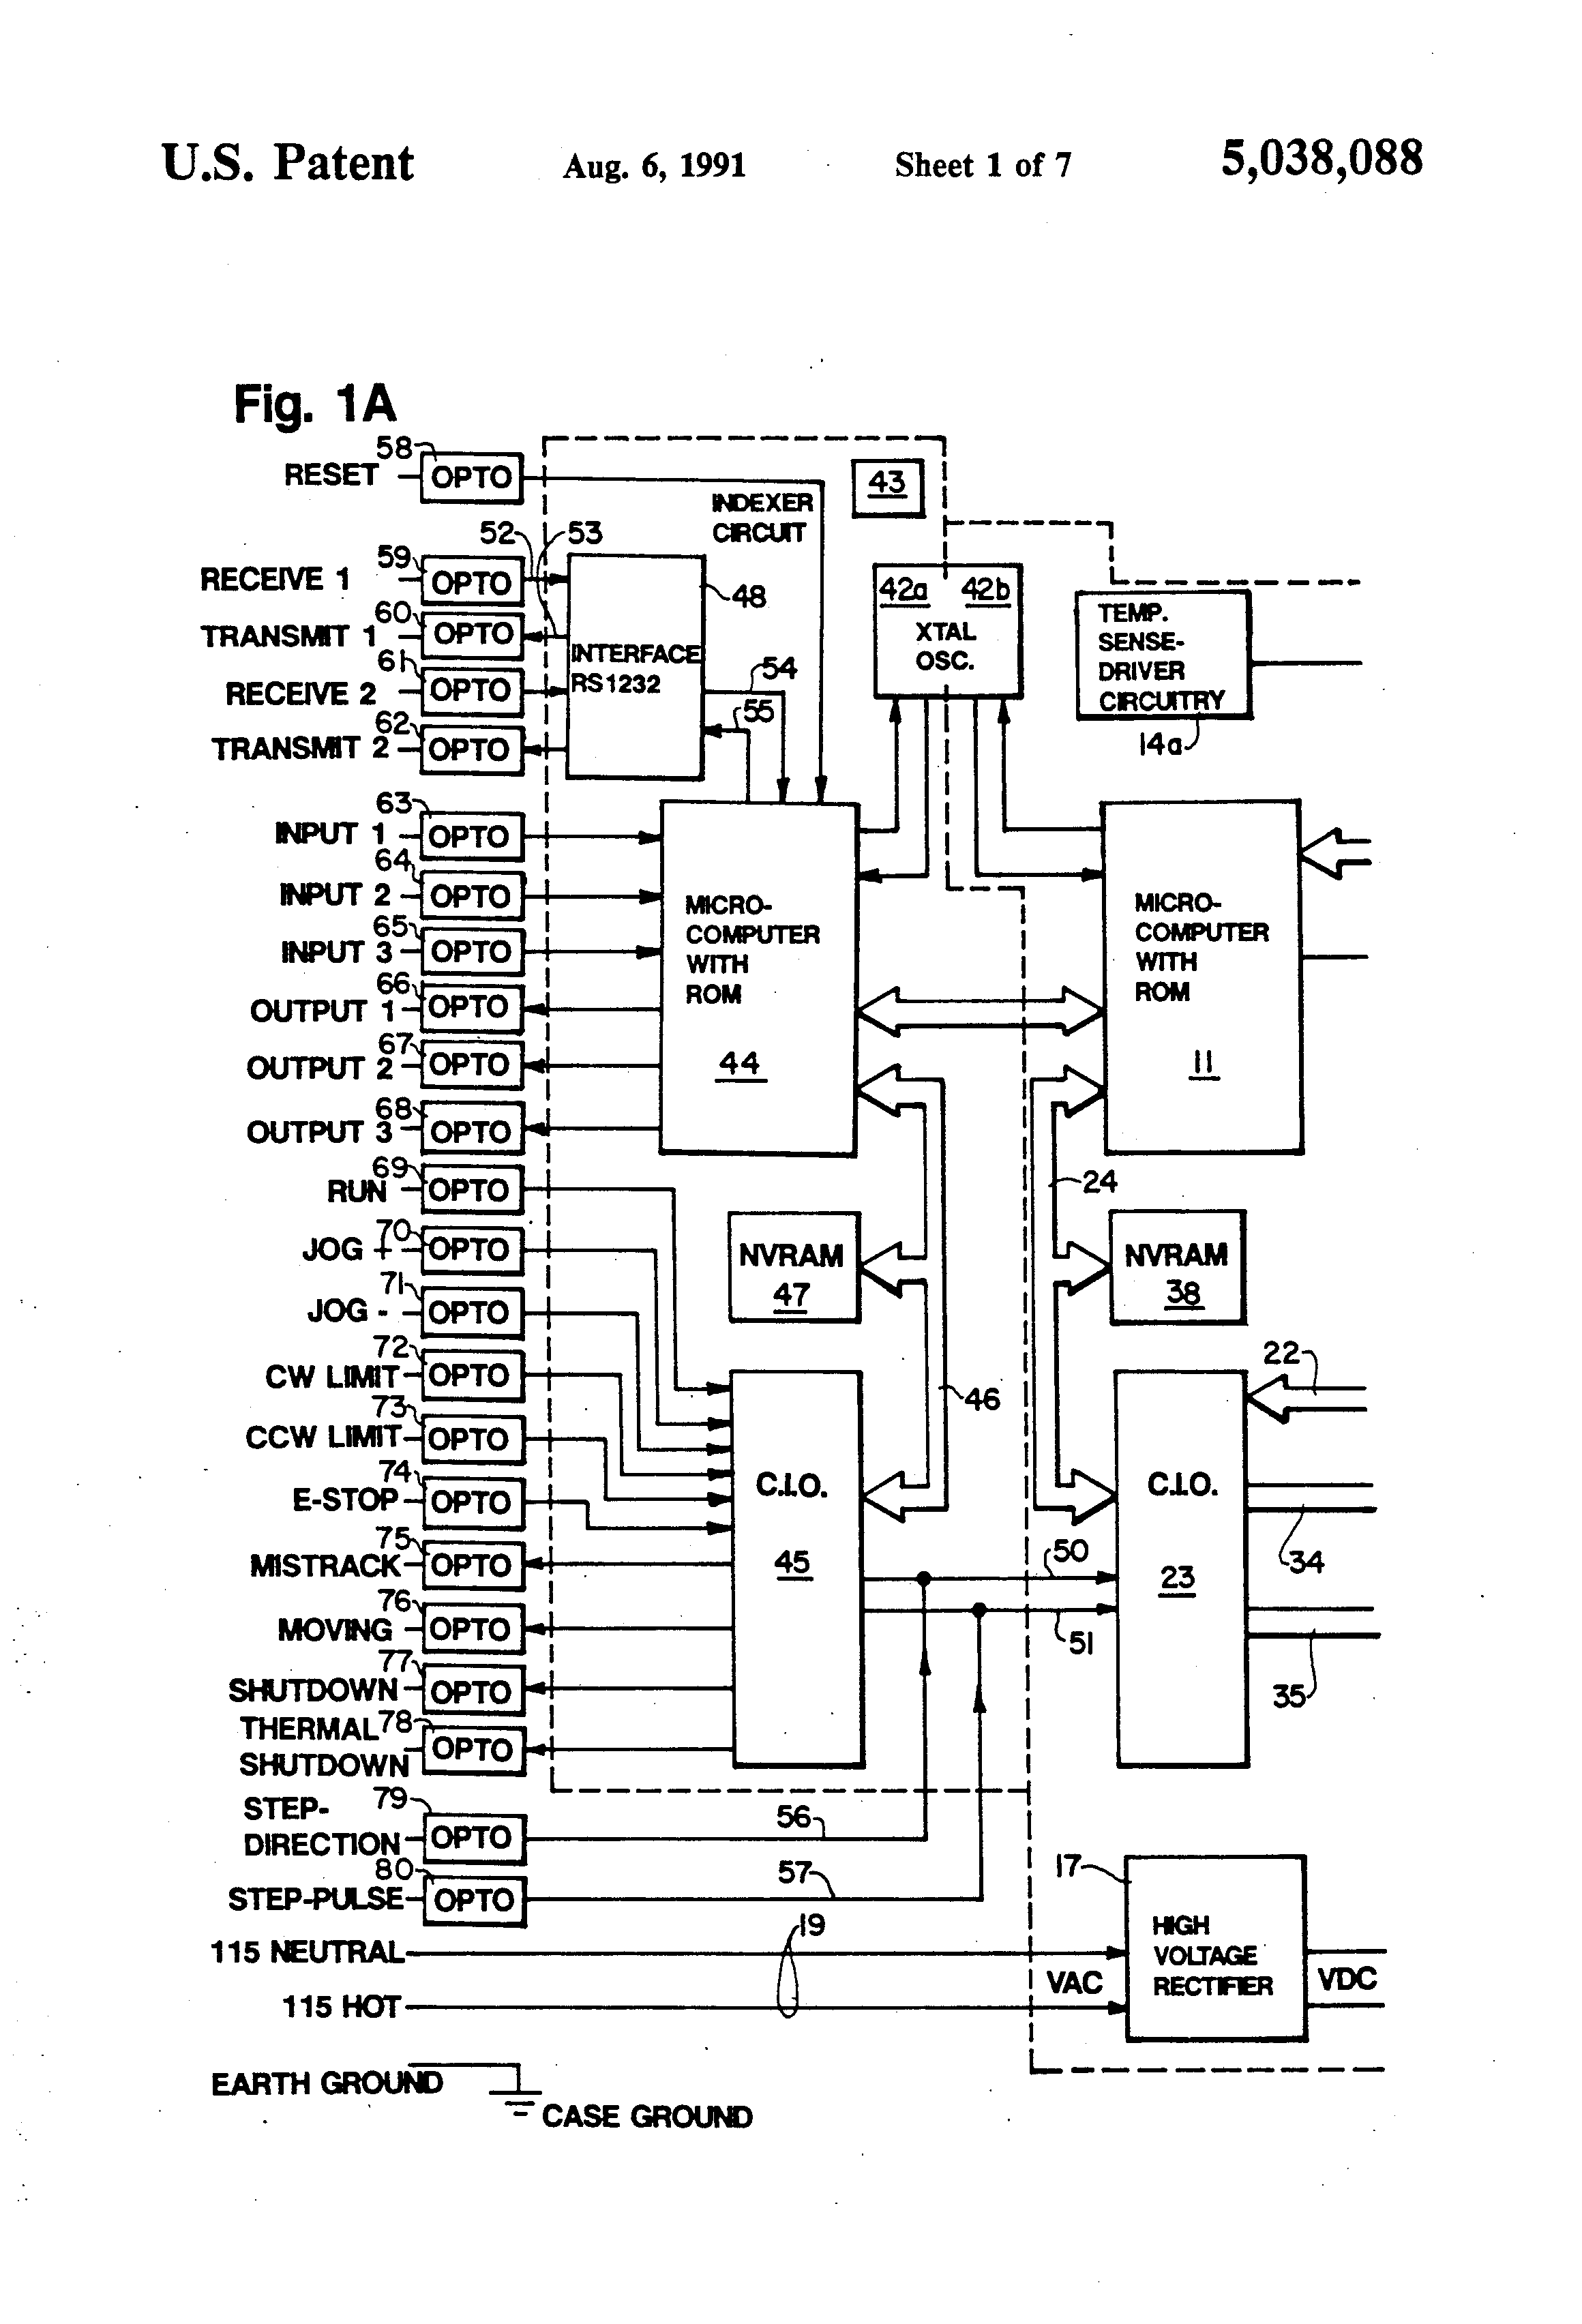 absolute encoder wiring diagram generator control panel patent us5038088 - stepper motor system google patents